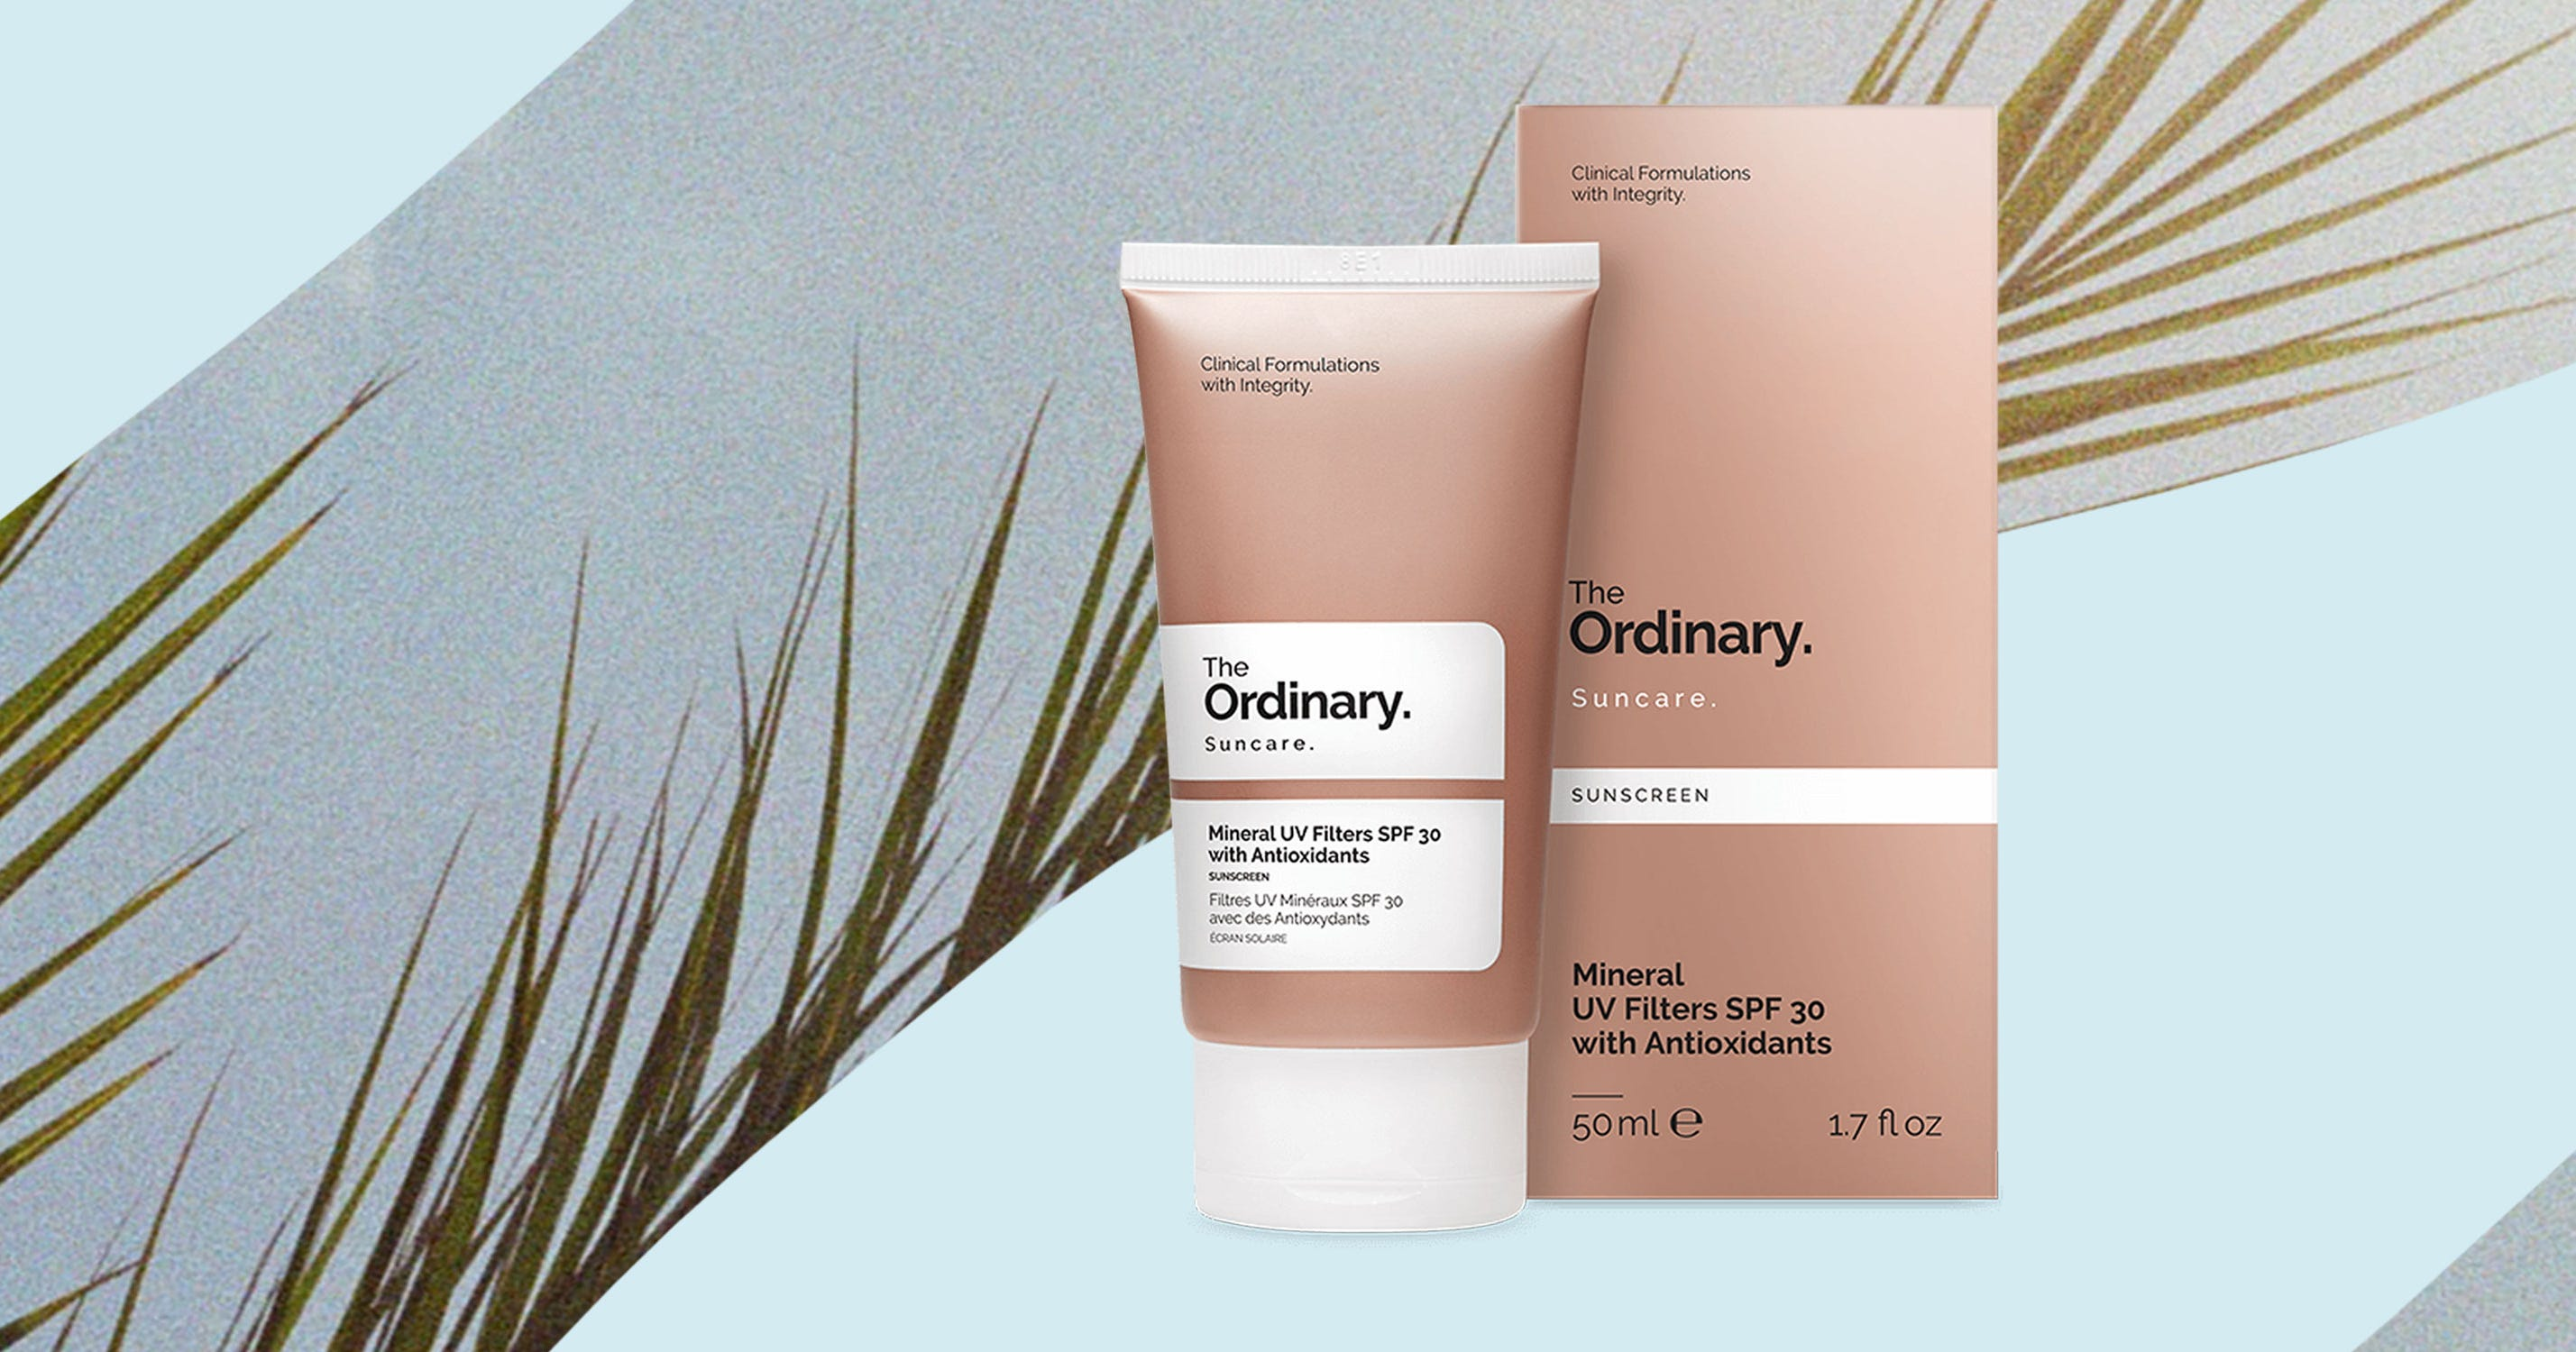 The Ordinarys Suncare Range Is Available To Buy Now Acnes Uv Tint Spf 35